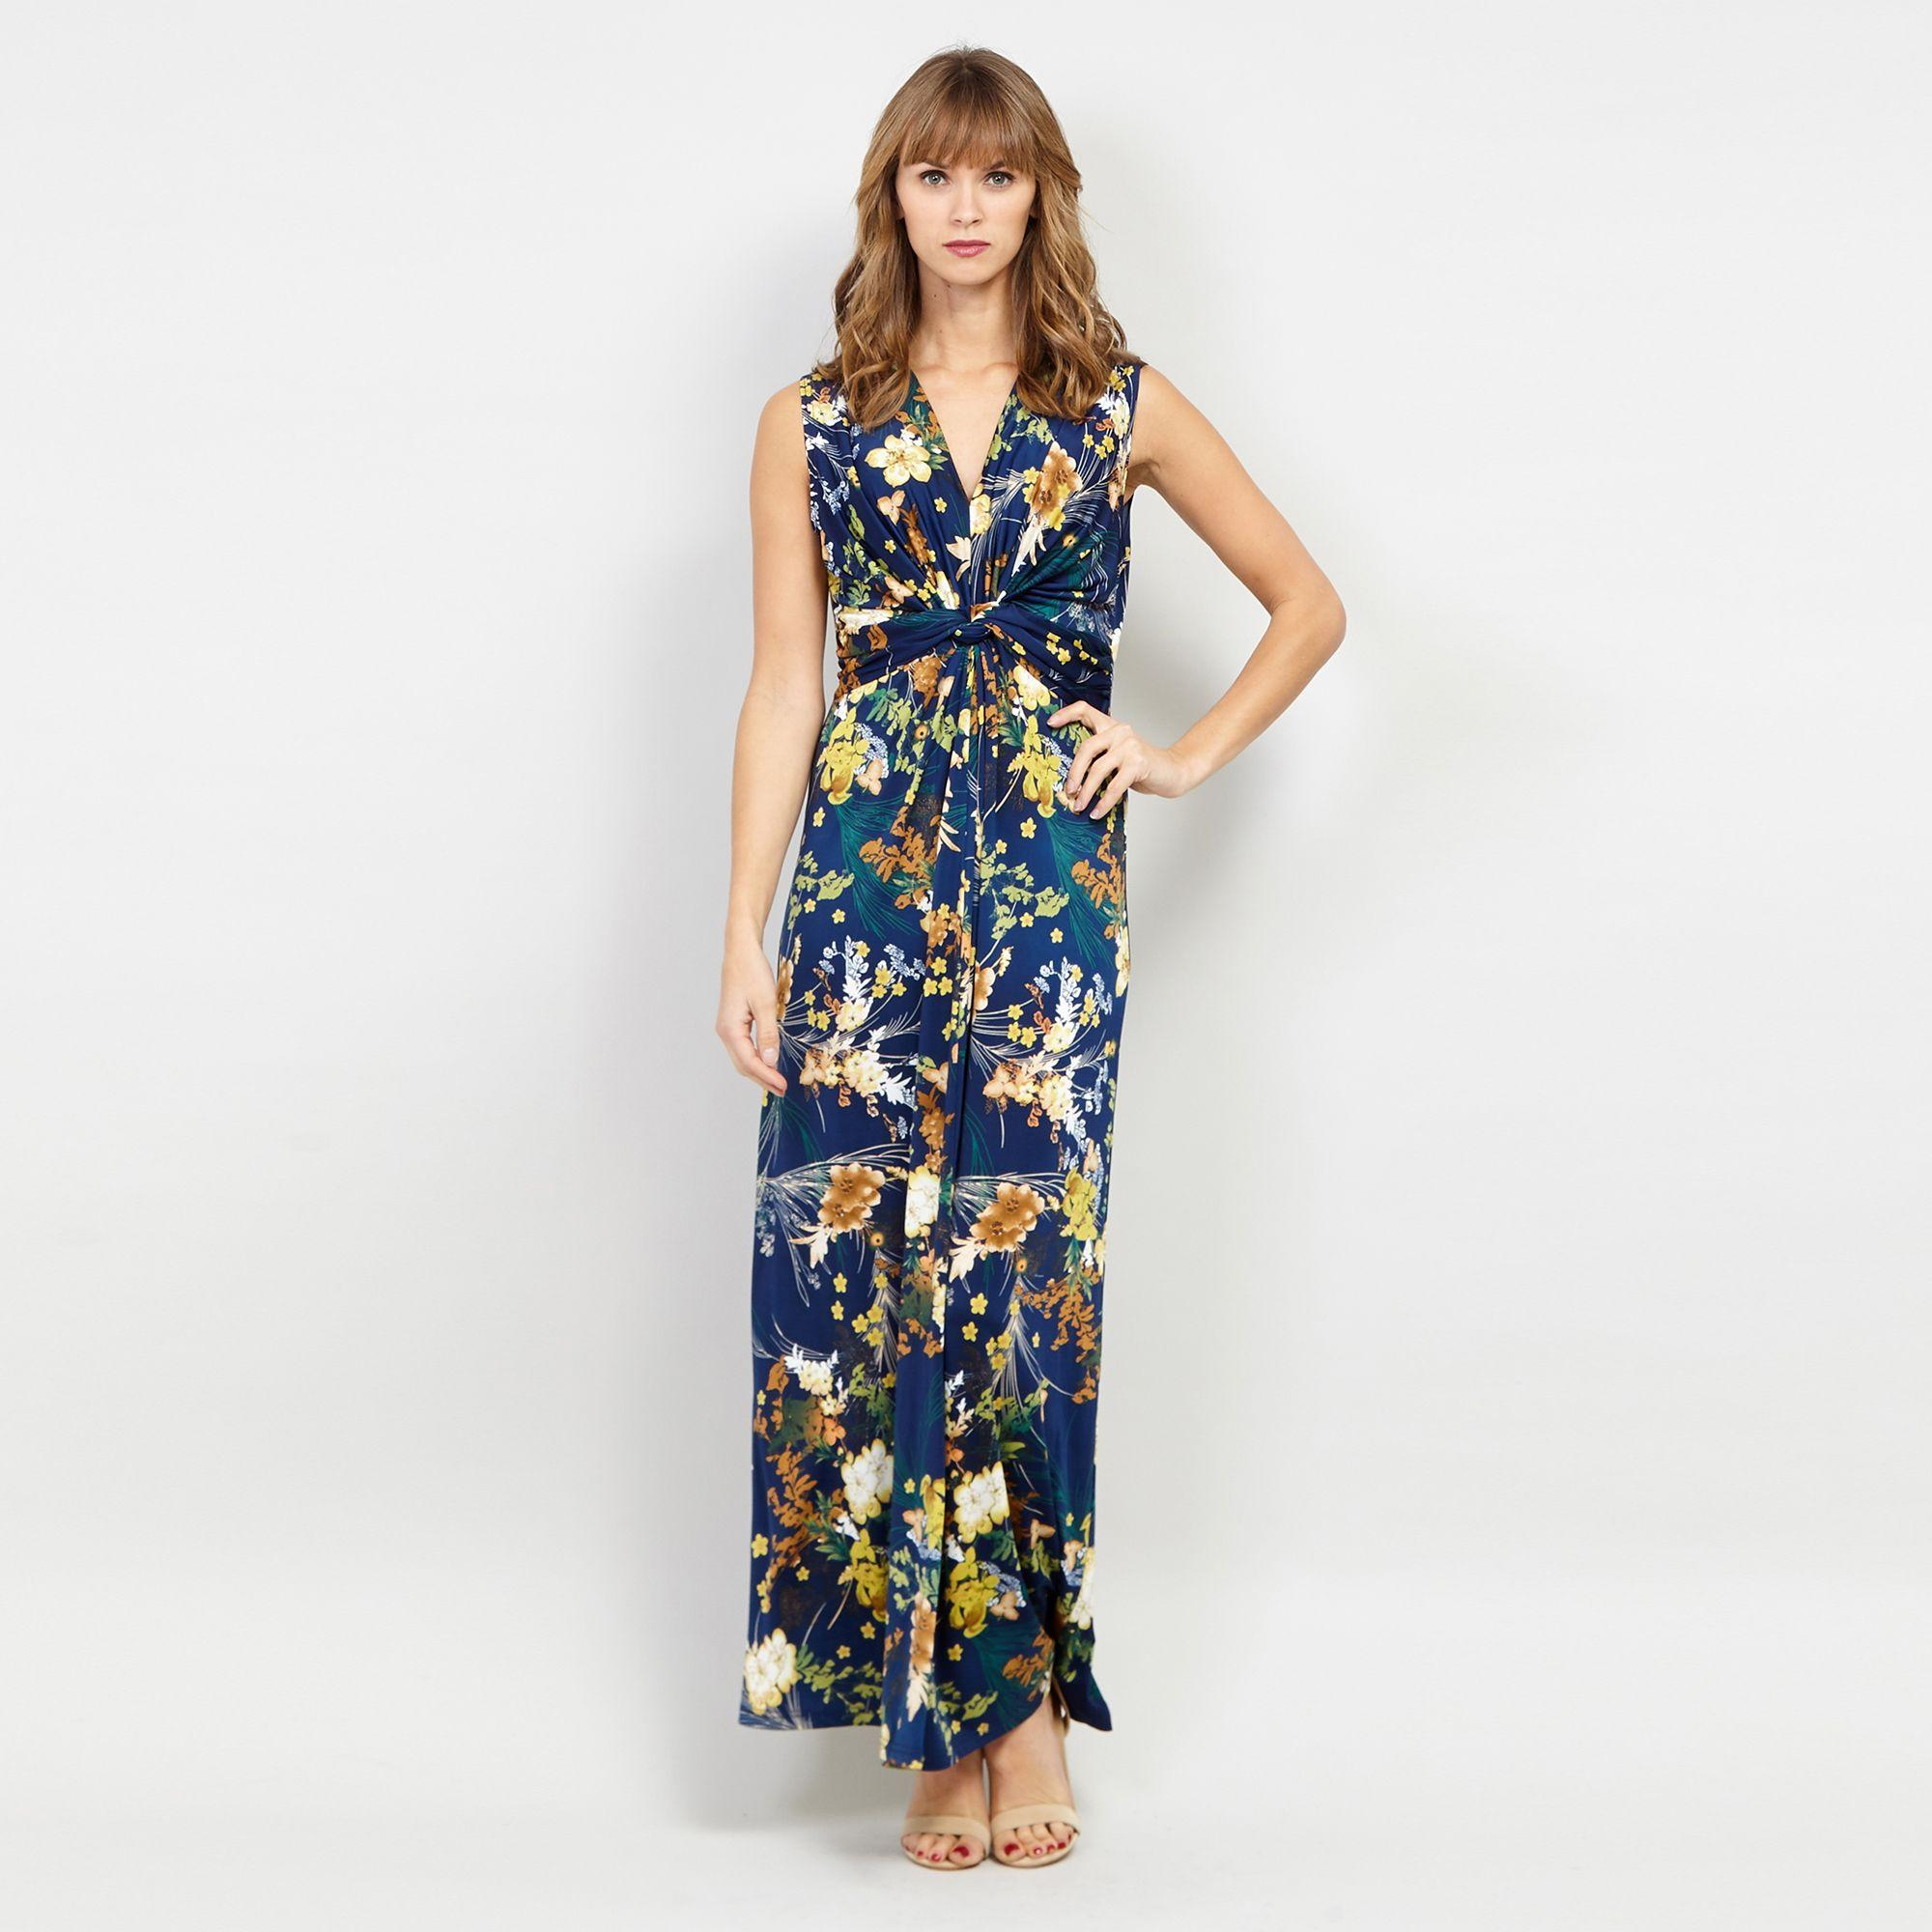 0e5ae08eb56 Izabel London - Blue Navy Floral Printed Maxi Dress - Lyst. View fullscreen